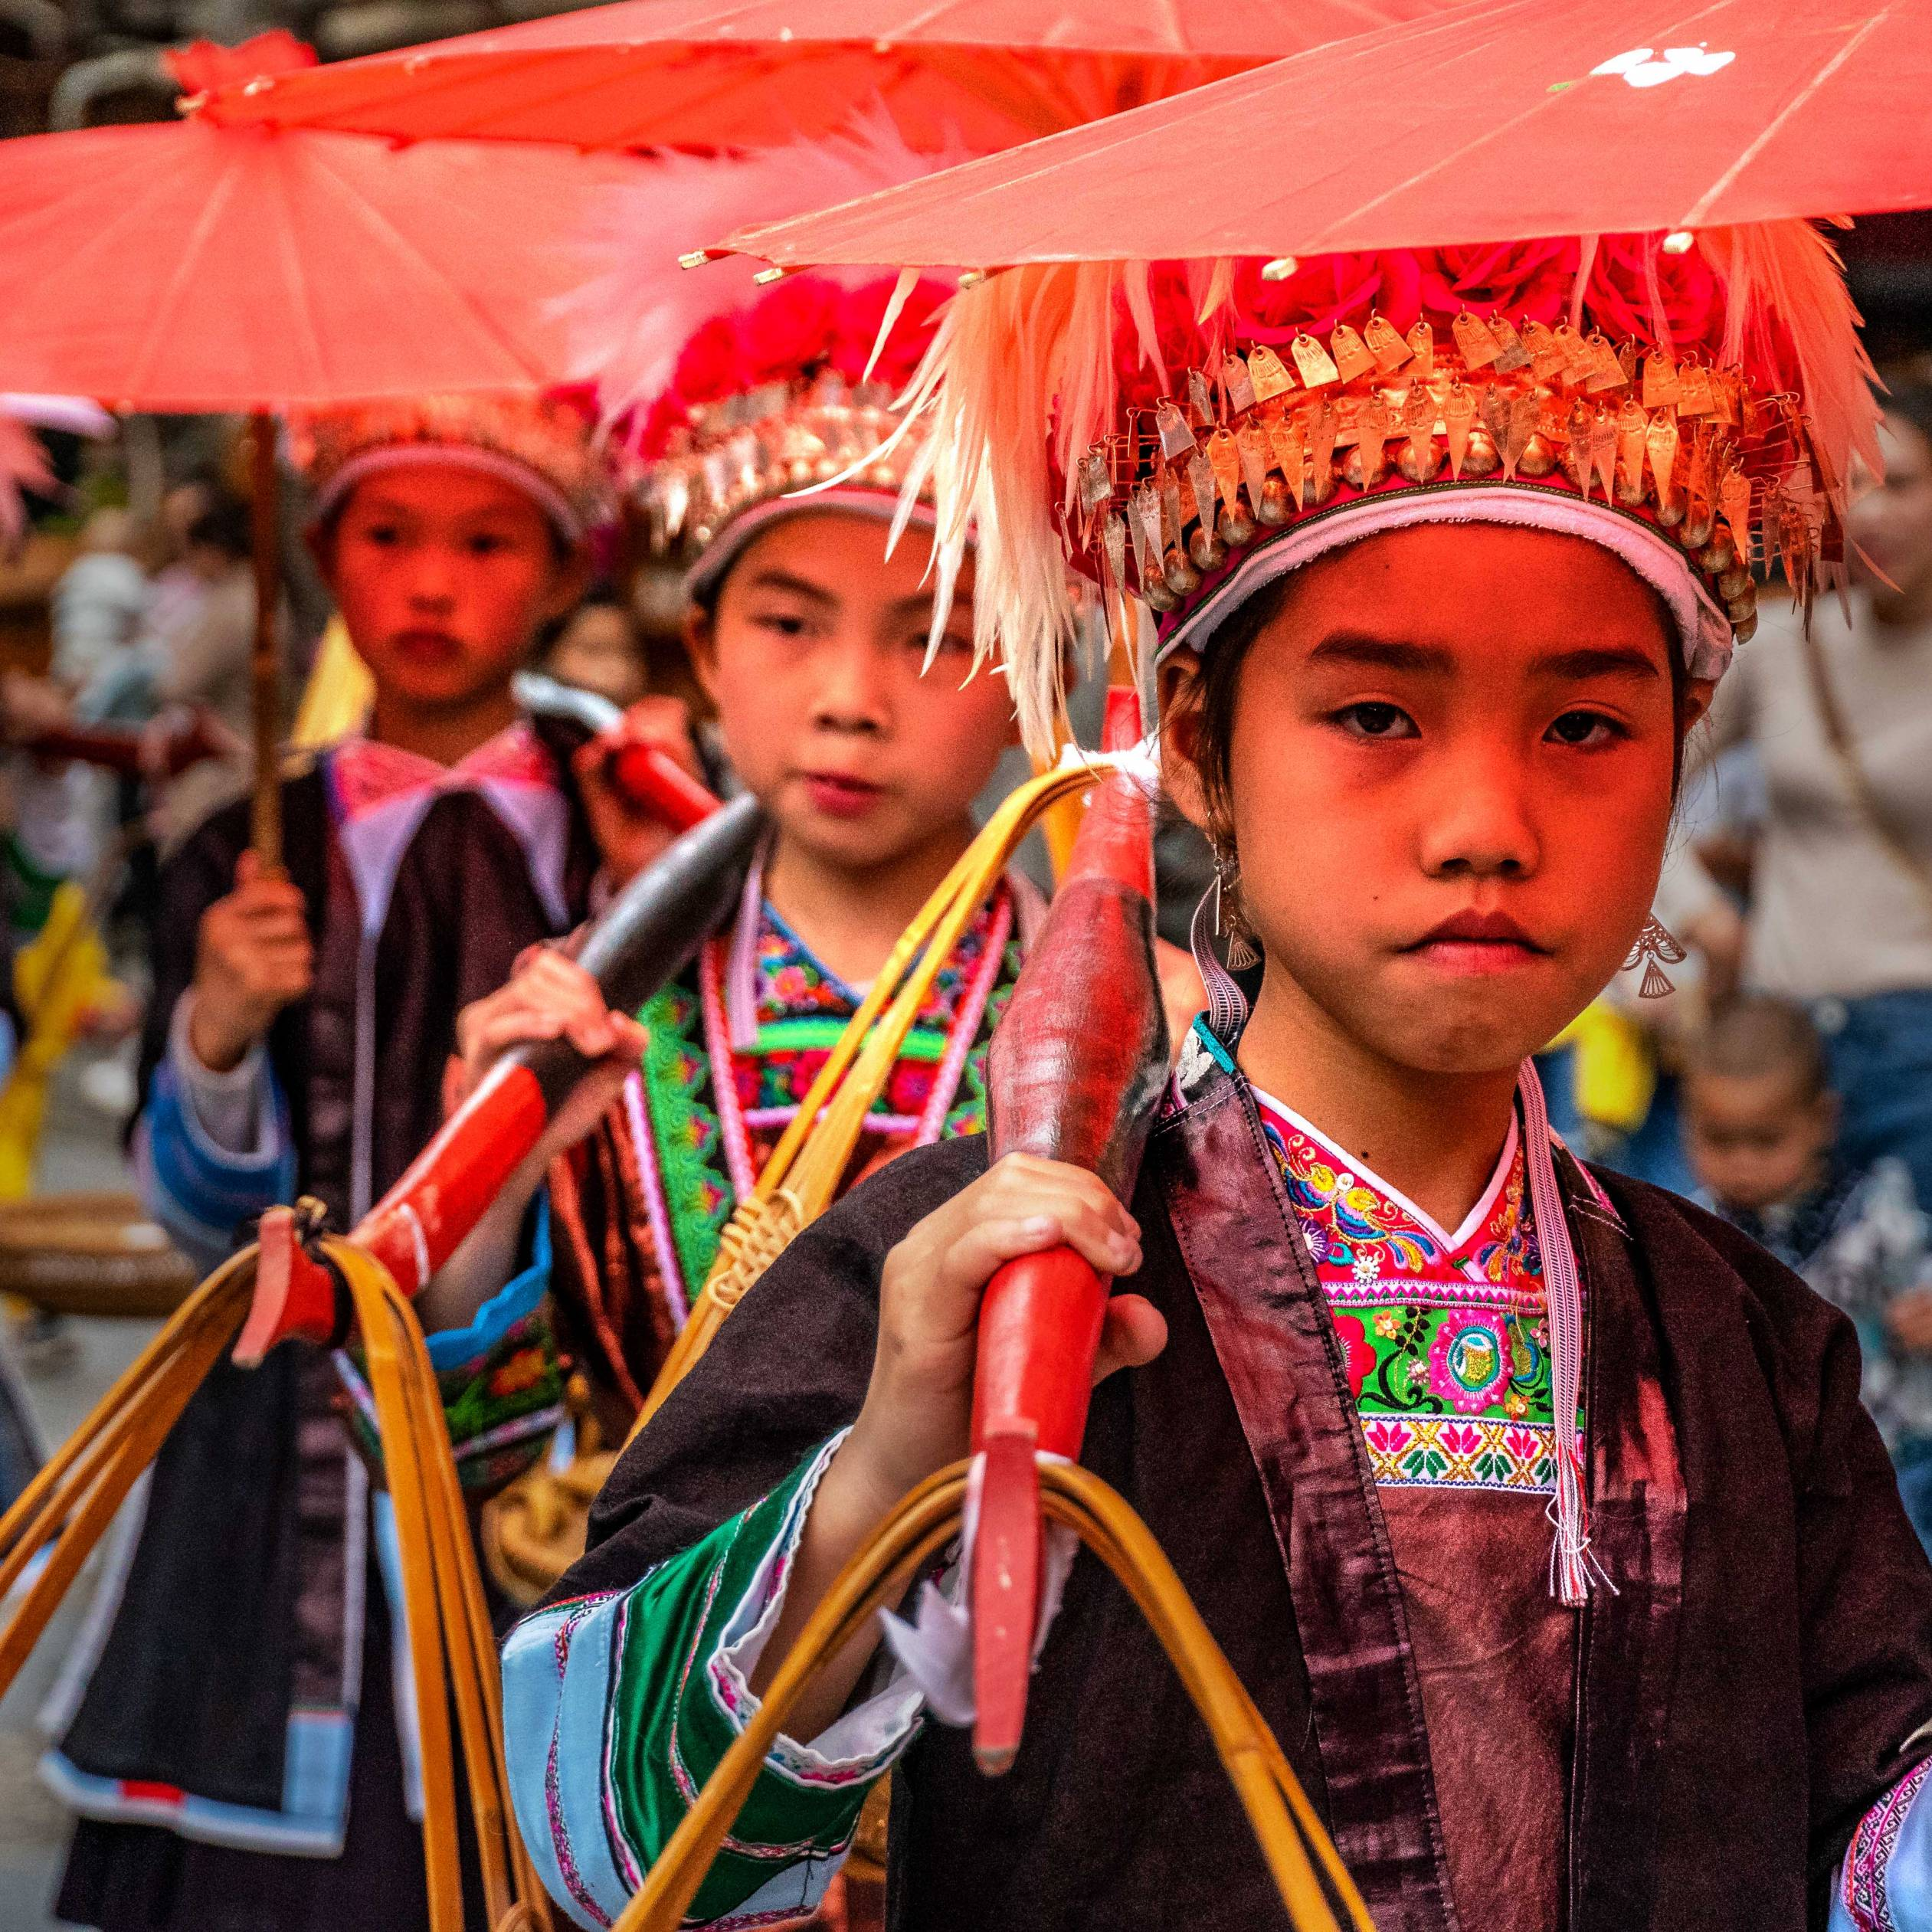 Children presenting traditional clothes of the Miao ethnic group, Hua Zhuang Miao Village, Province Yunnan